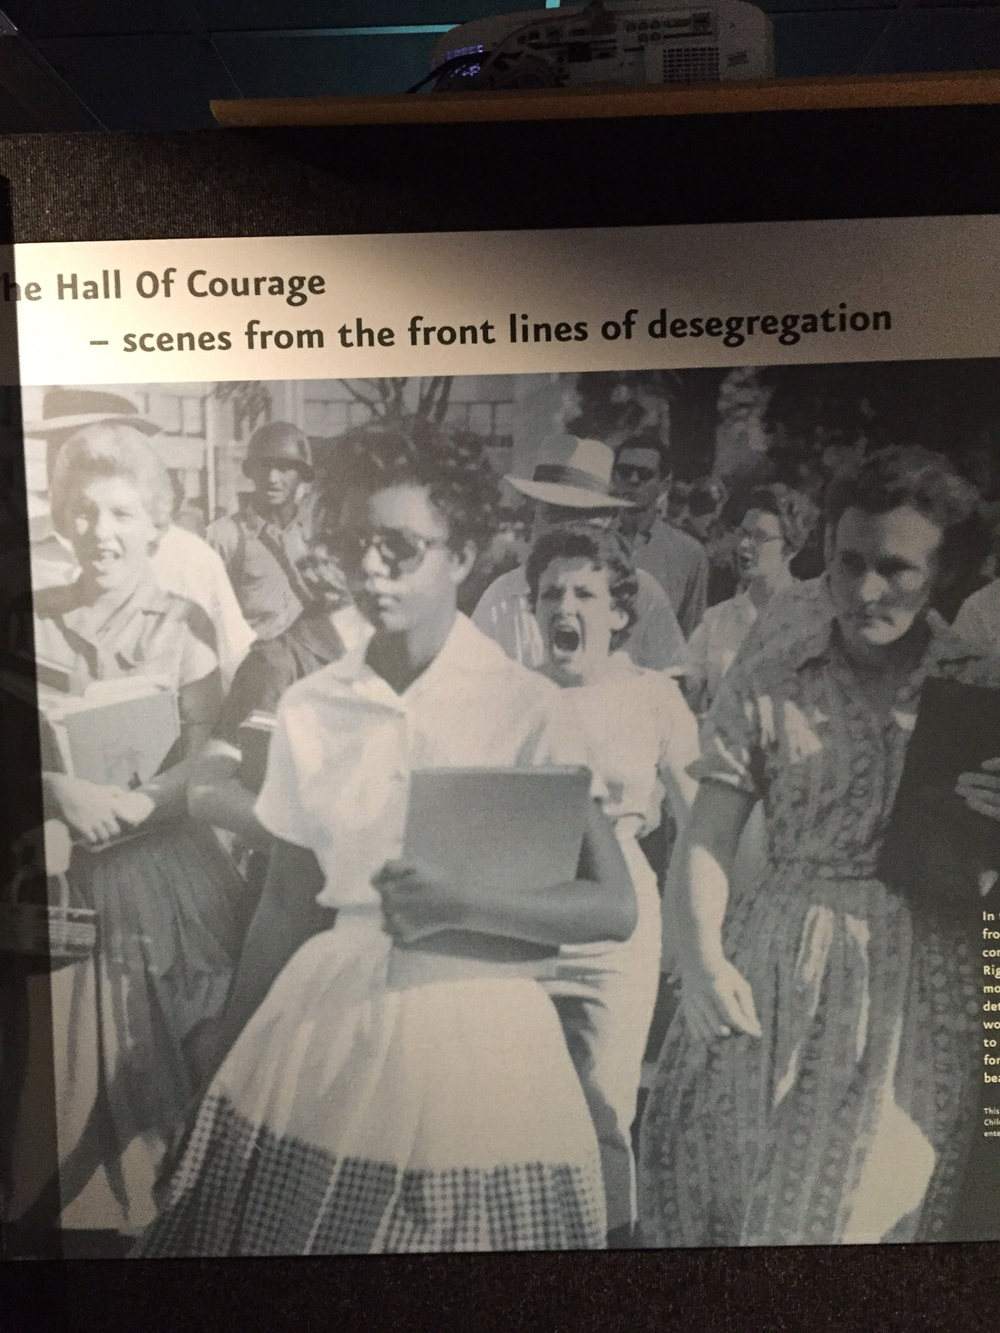 Image from the desegregation of Univ of Alabama